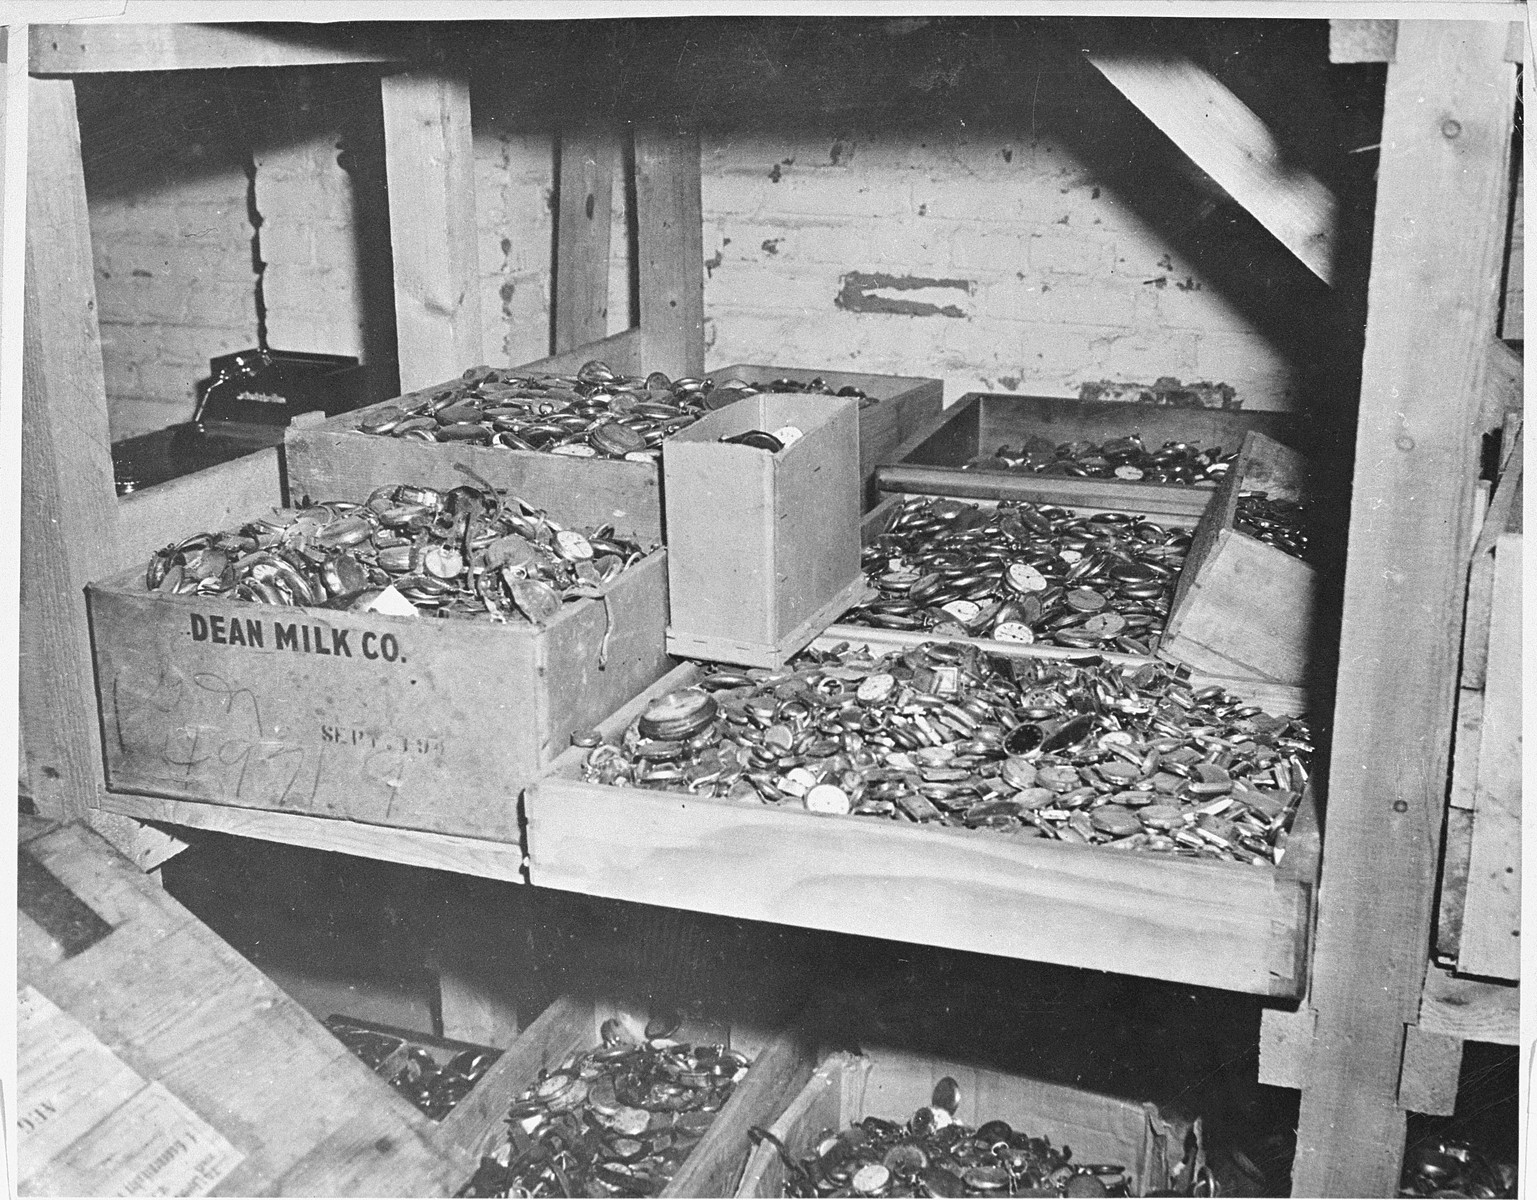 Prisoners' watches confiscated by the SS in Buchenwald and discovered by the First U.S. Army in a cave adjoining the camp.